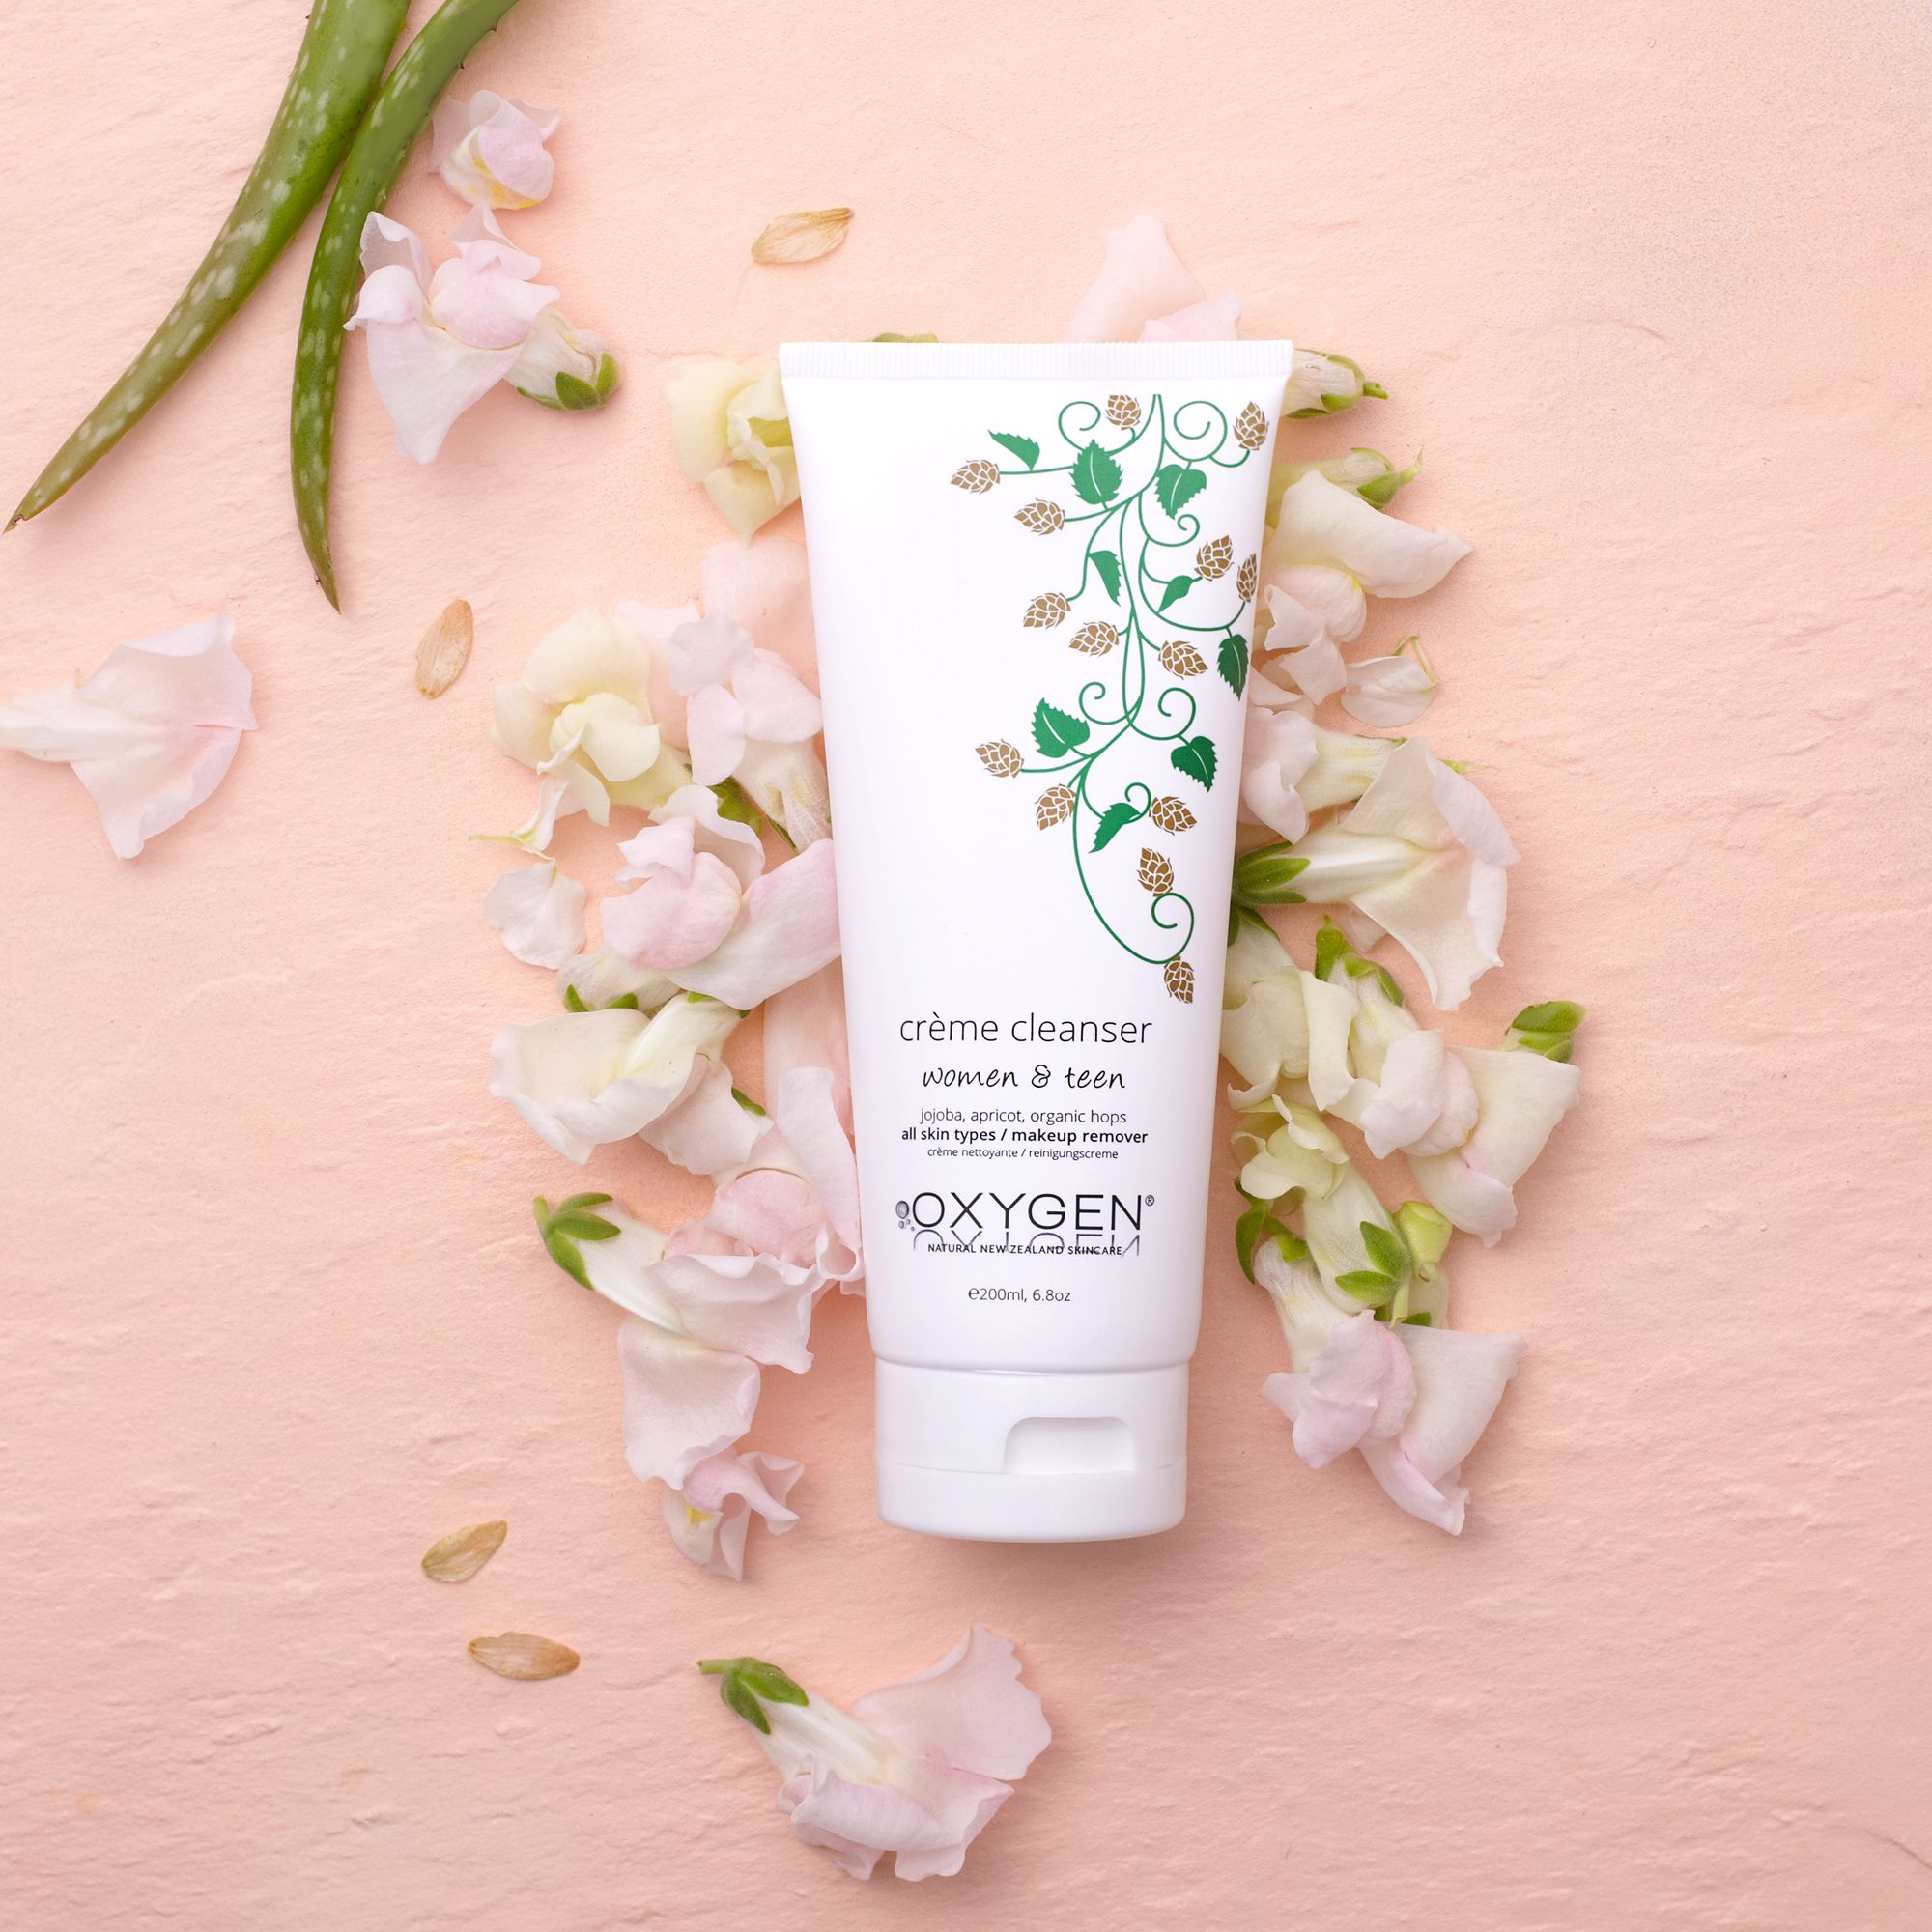 Crème cleanser for normal / combination skin Face